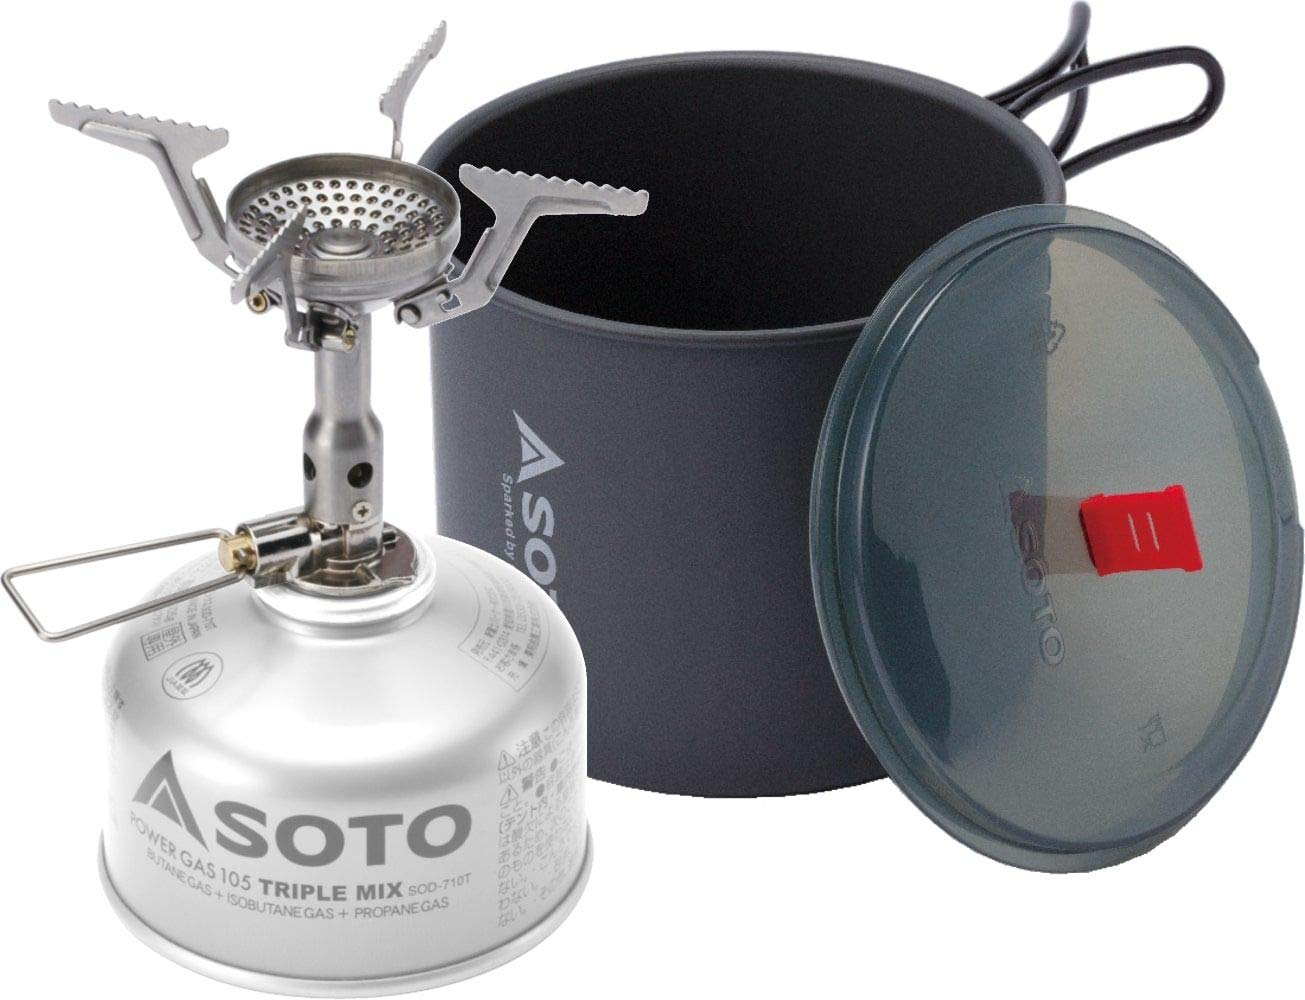 SOTO Amicus Stove with or Without Igniter